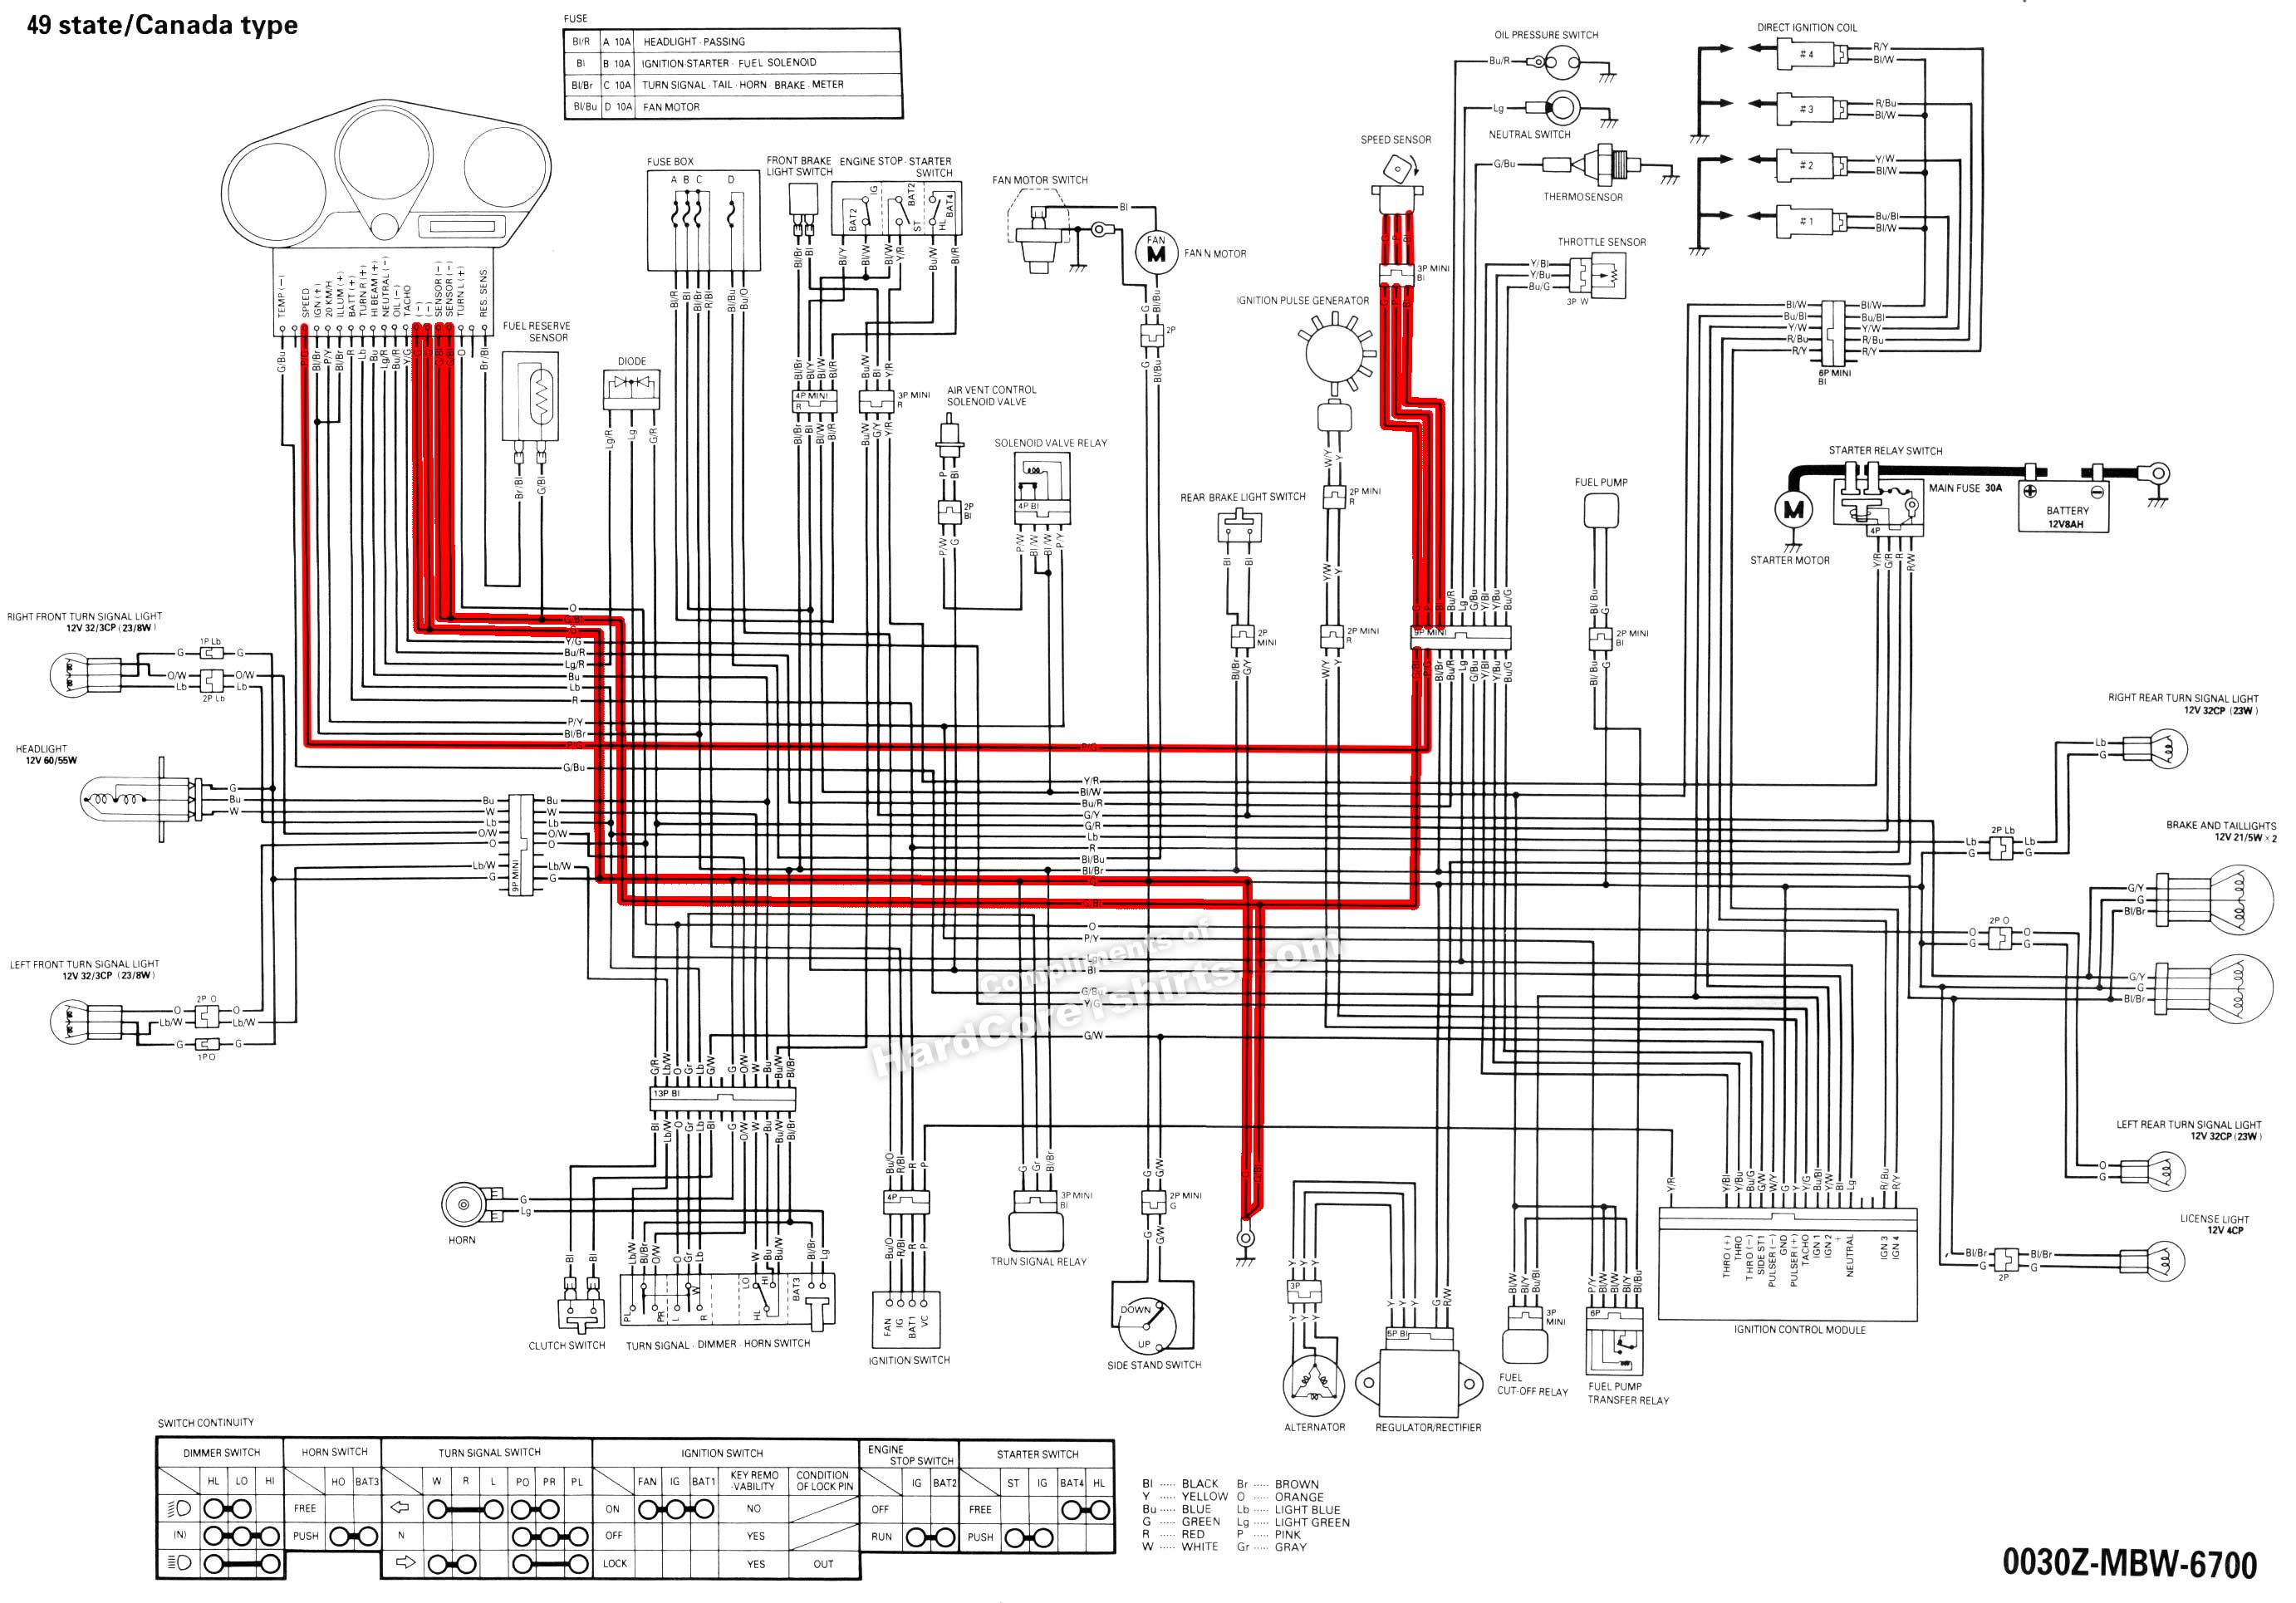 88643d1151601321 how do i connect speedo cbrf4_wiring_diagram speedo need some help! electrical problem cbr forum enthusiast forums 2008 honda cbr600rr wiring diagram at nearapp.co